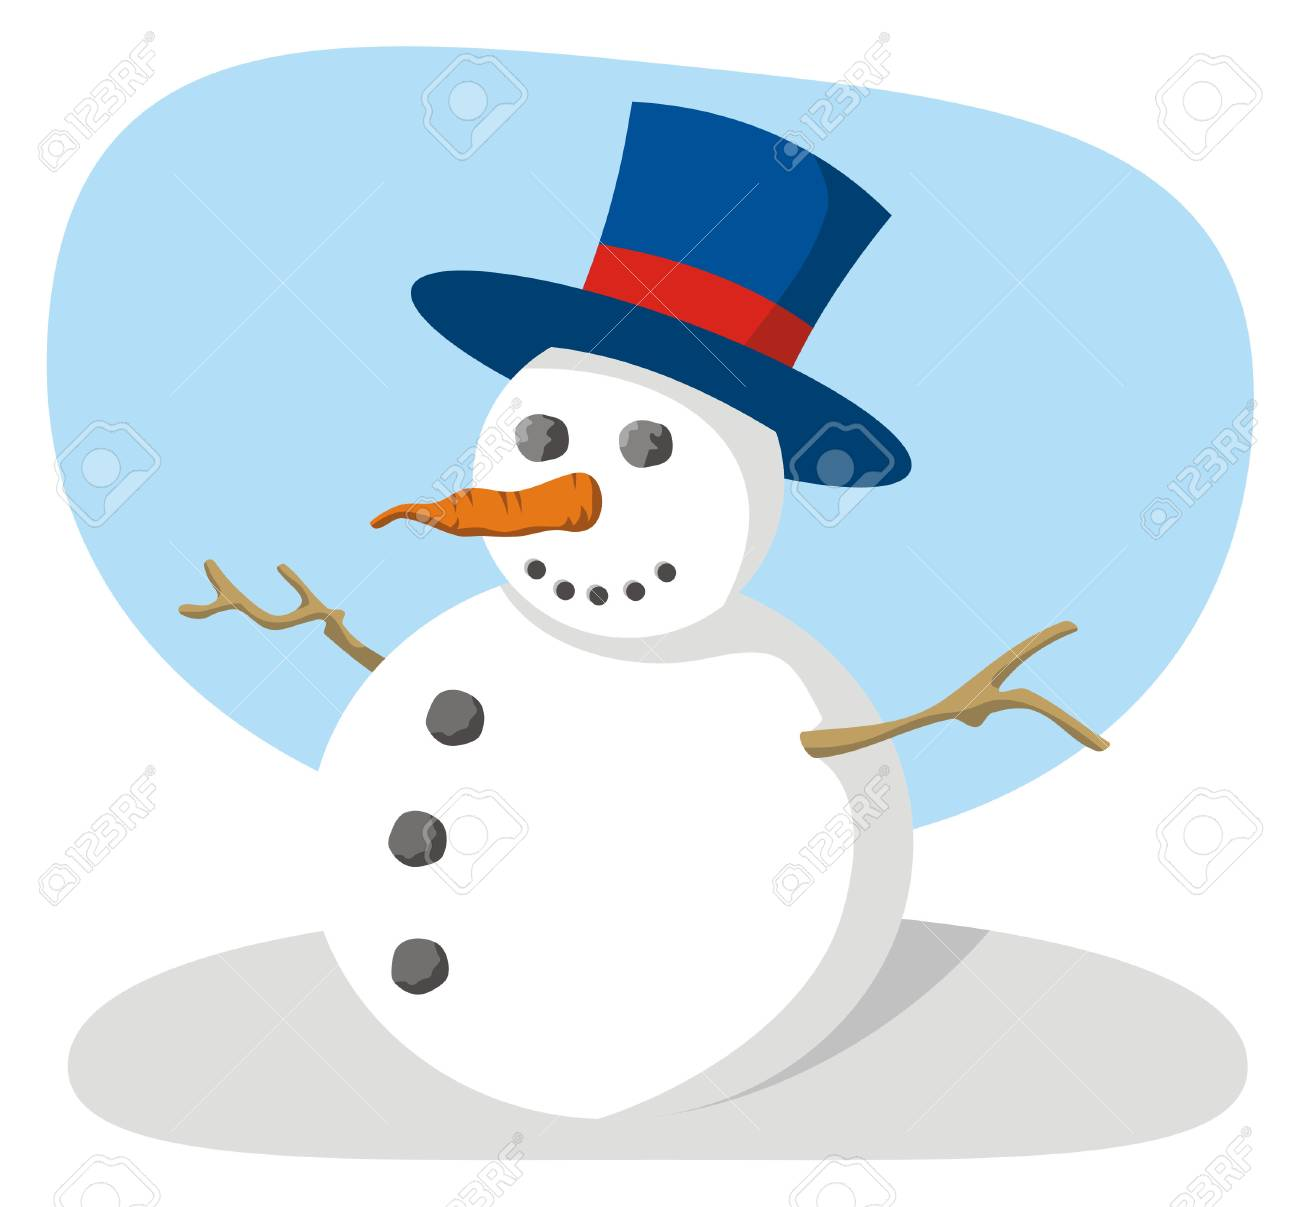 Snowman with hat - 2941945